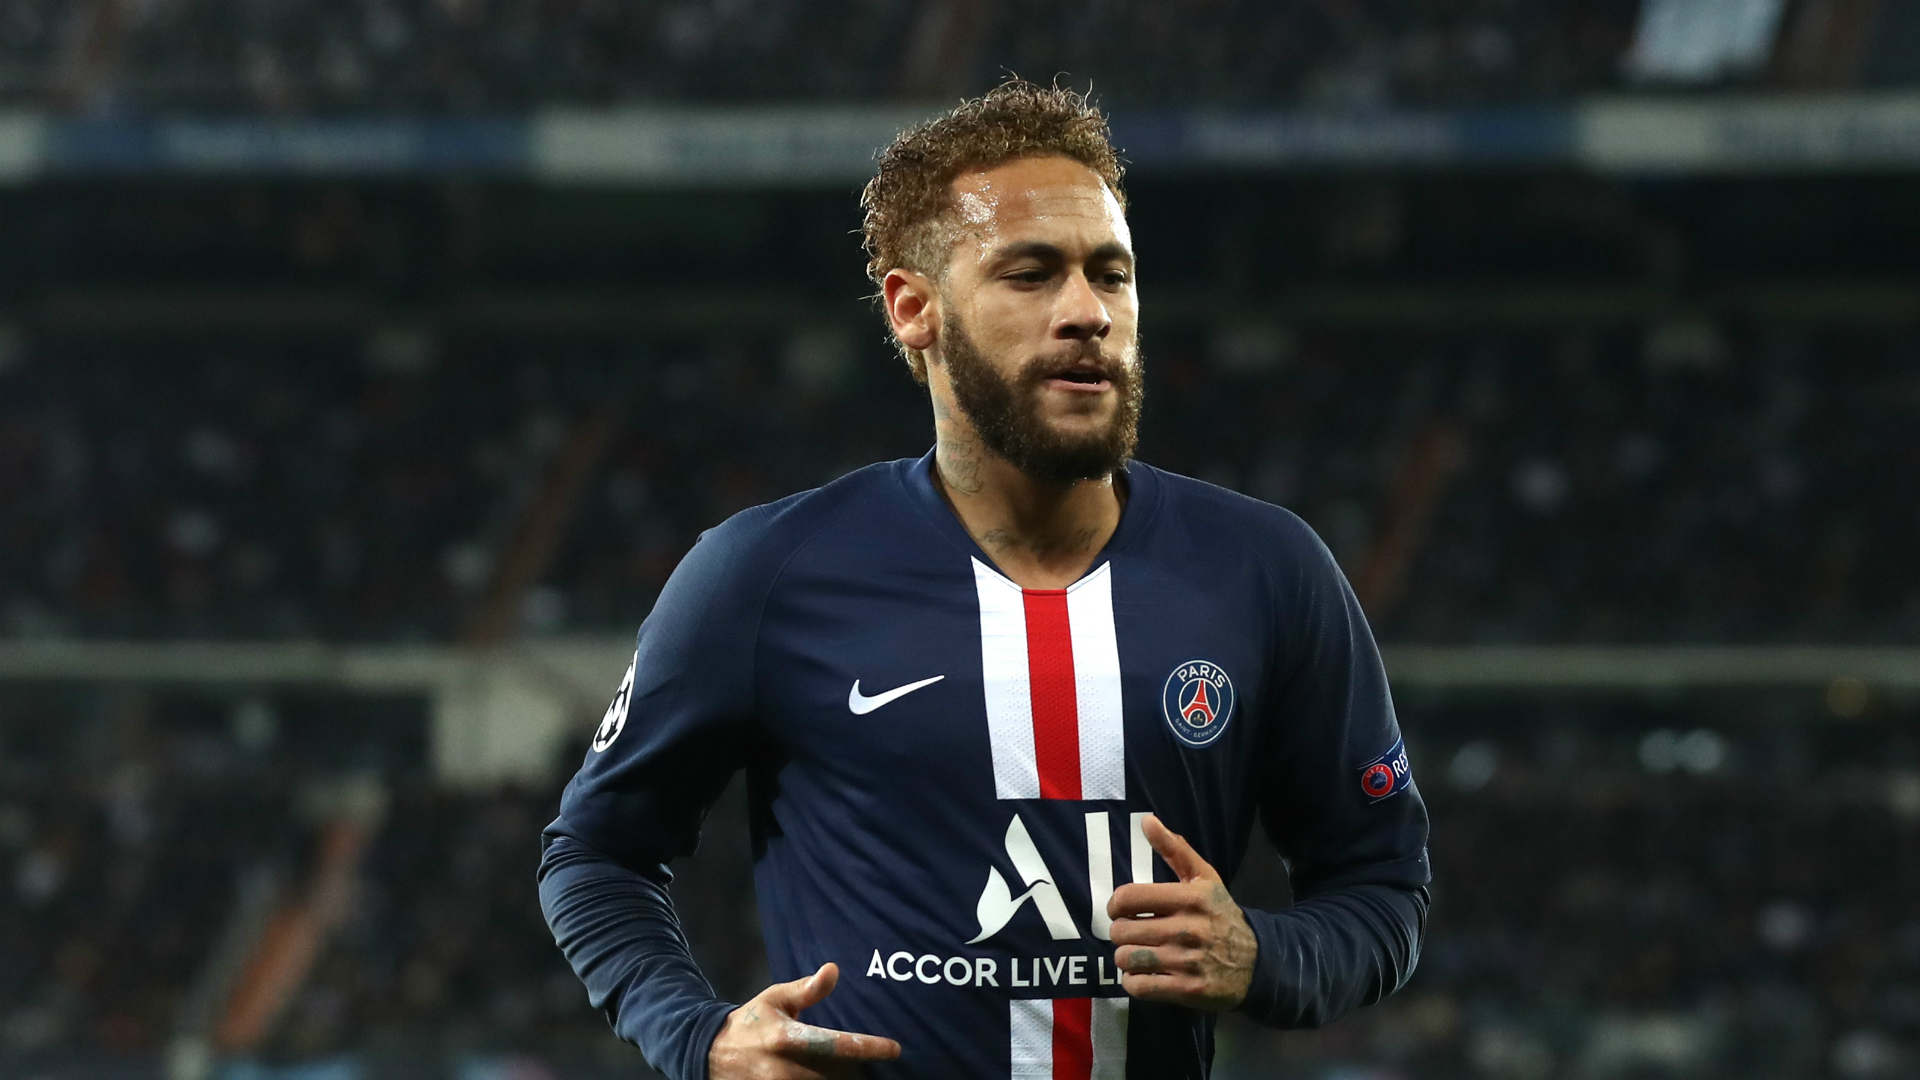 Neymar 'happy' at Paris Saint-Germain and targets big impact in Champions League knockout stage